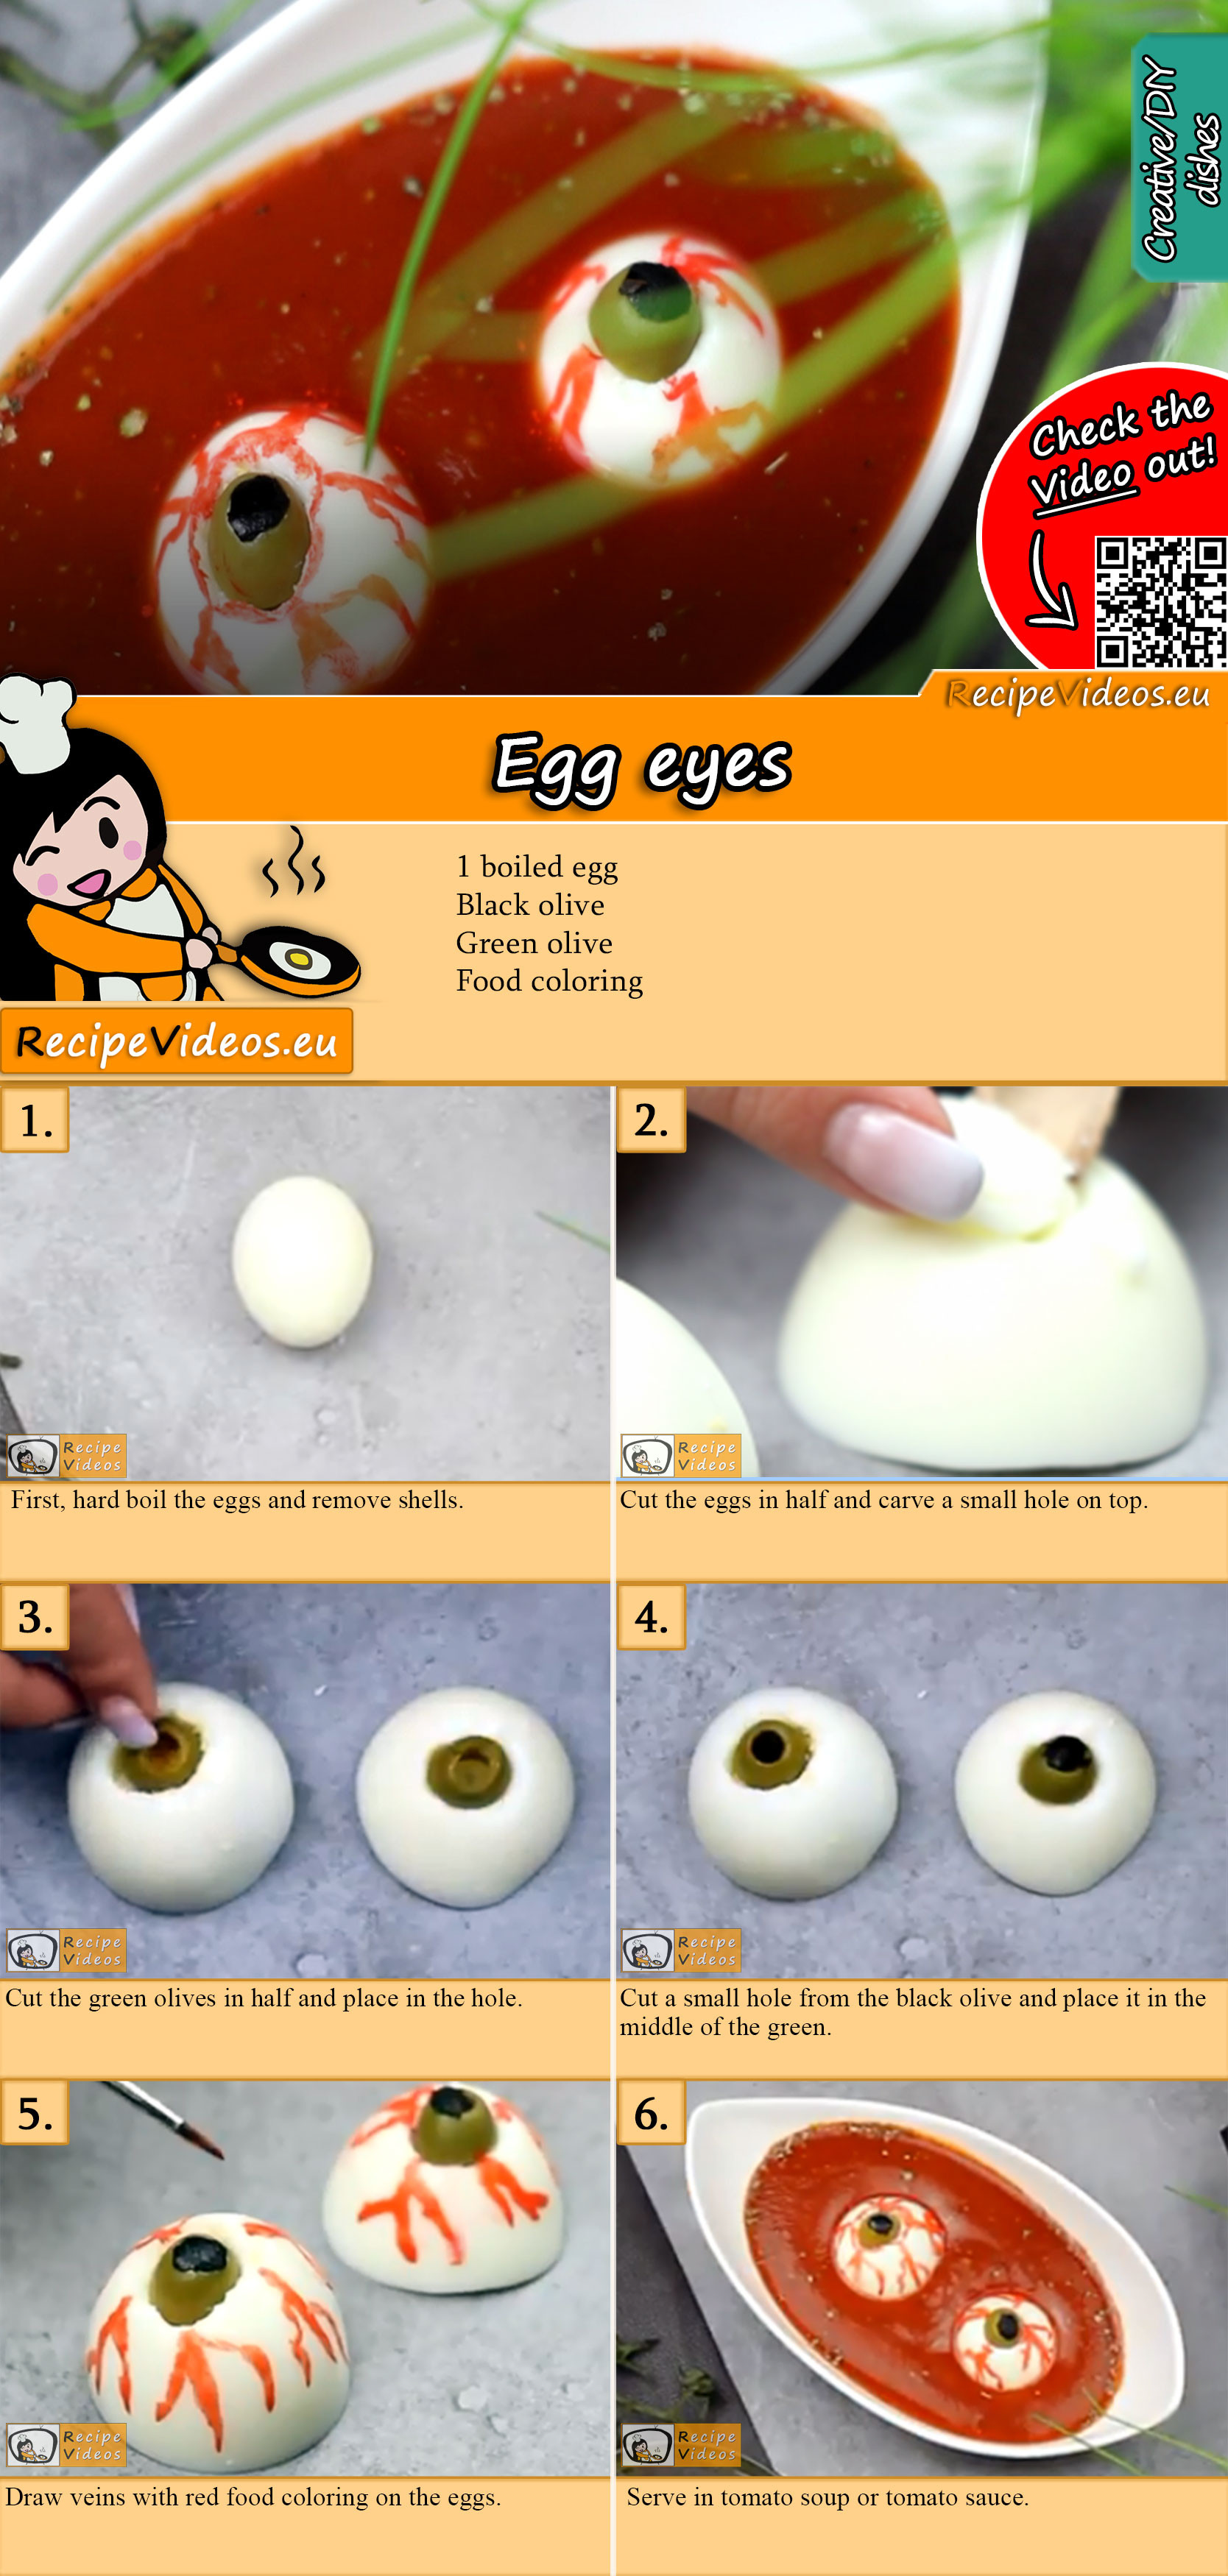 Egg eyes recipe with video